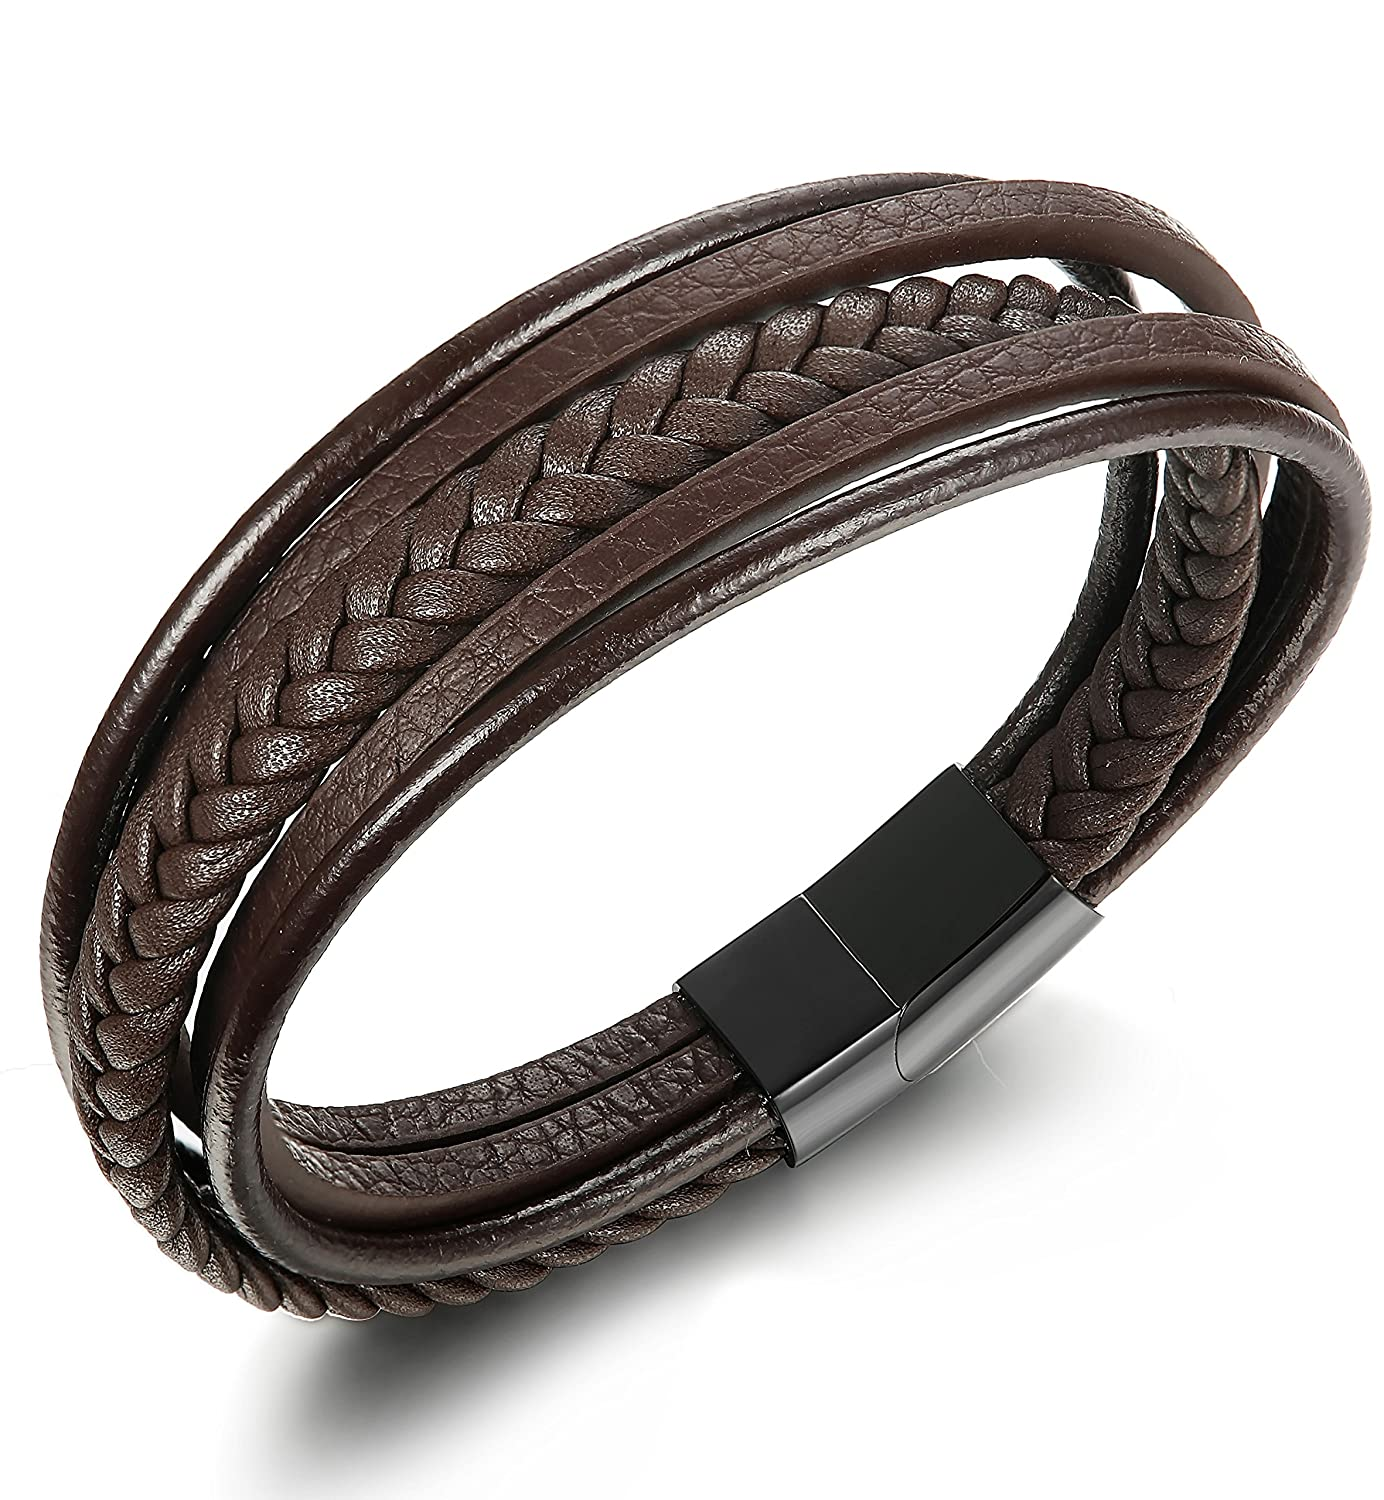 JOERICA Braided Leather Bracelet Stainless Steel Magnetic-Clasp Wrap Mens Bracelet 7.5-8.5inches